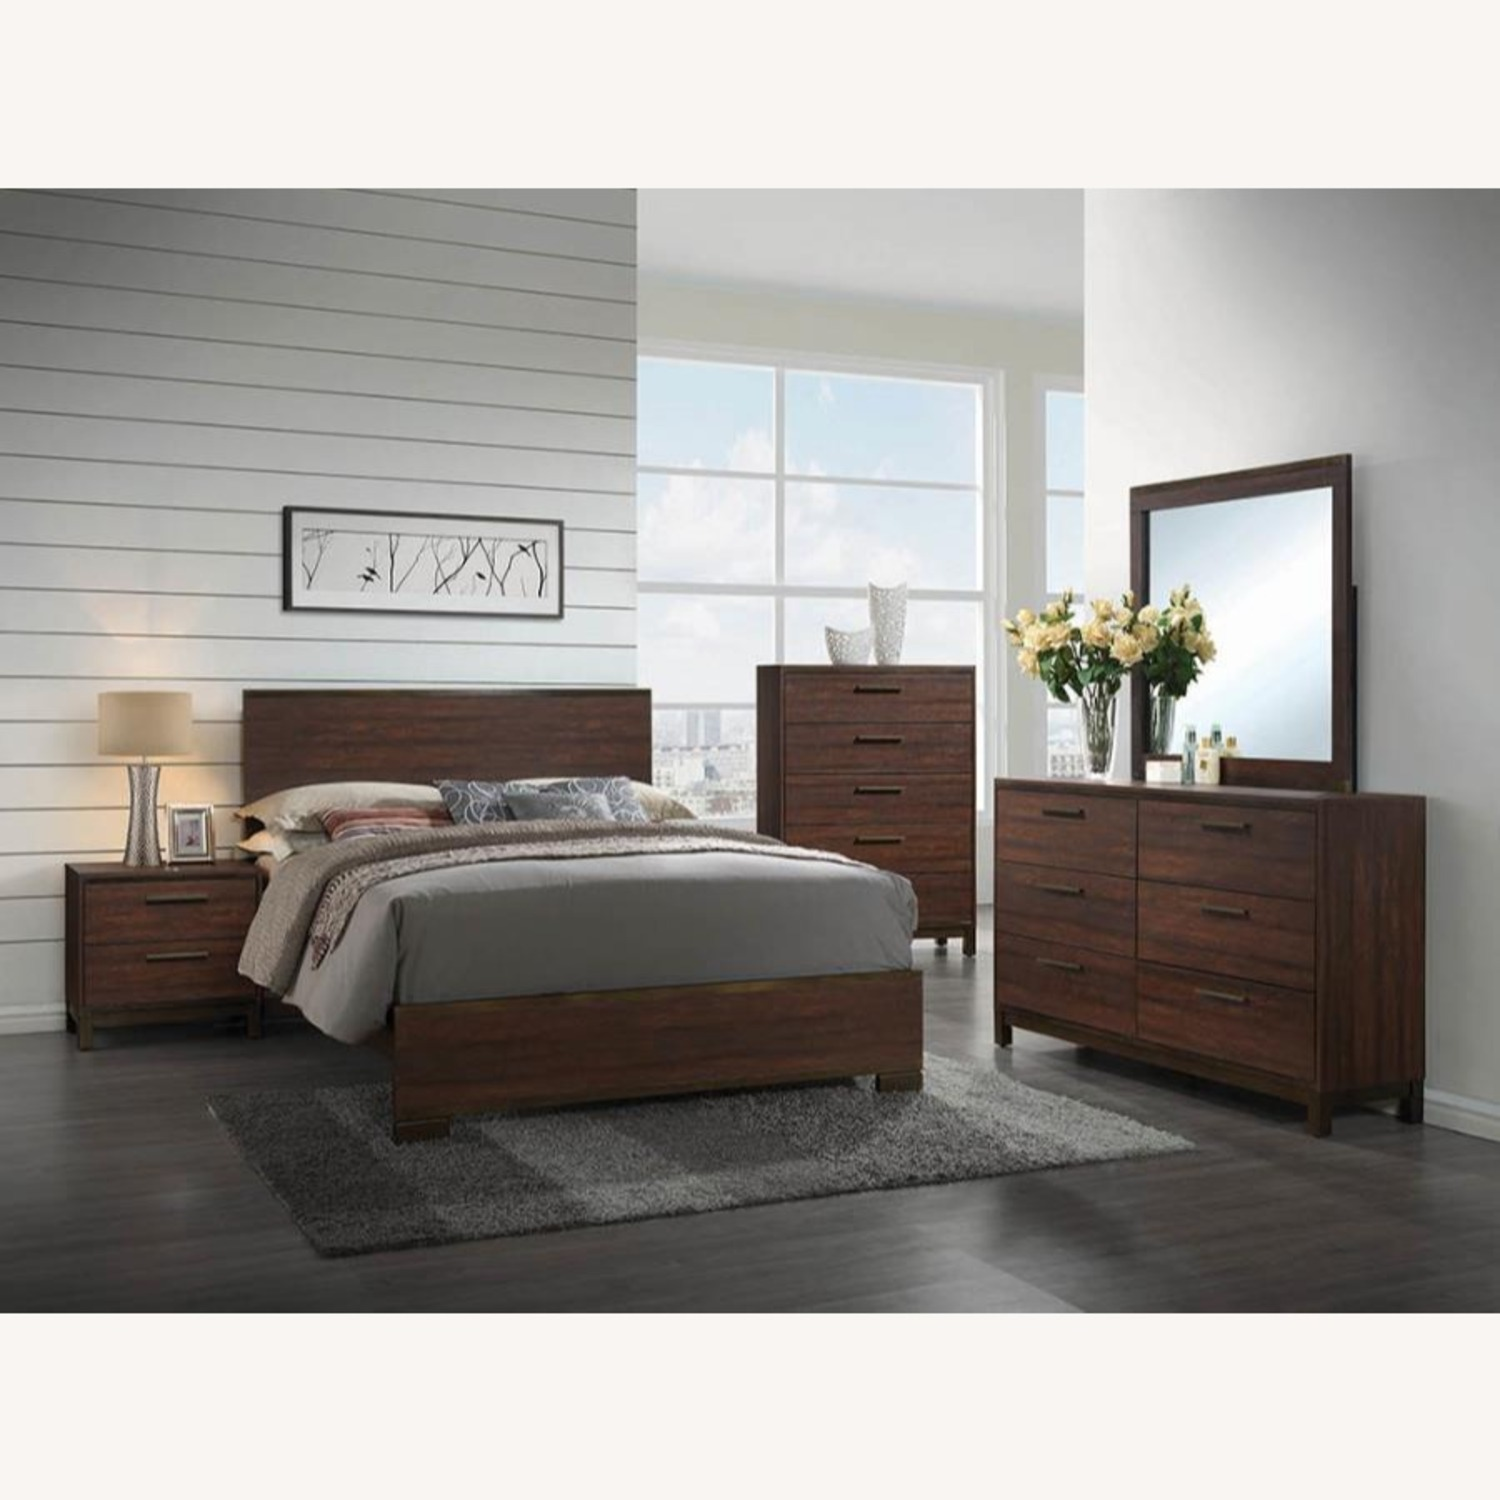 Queen Bed In Rustic Tobacco Finish - image-1